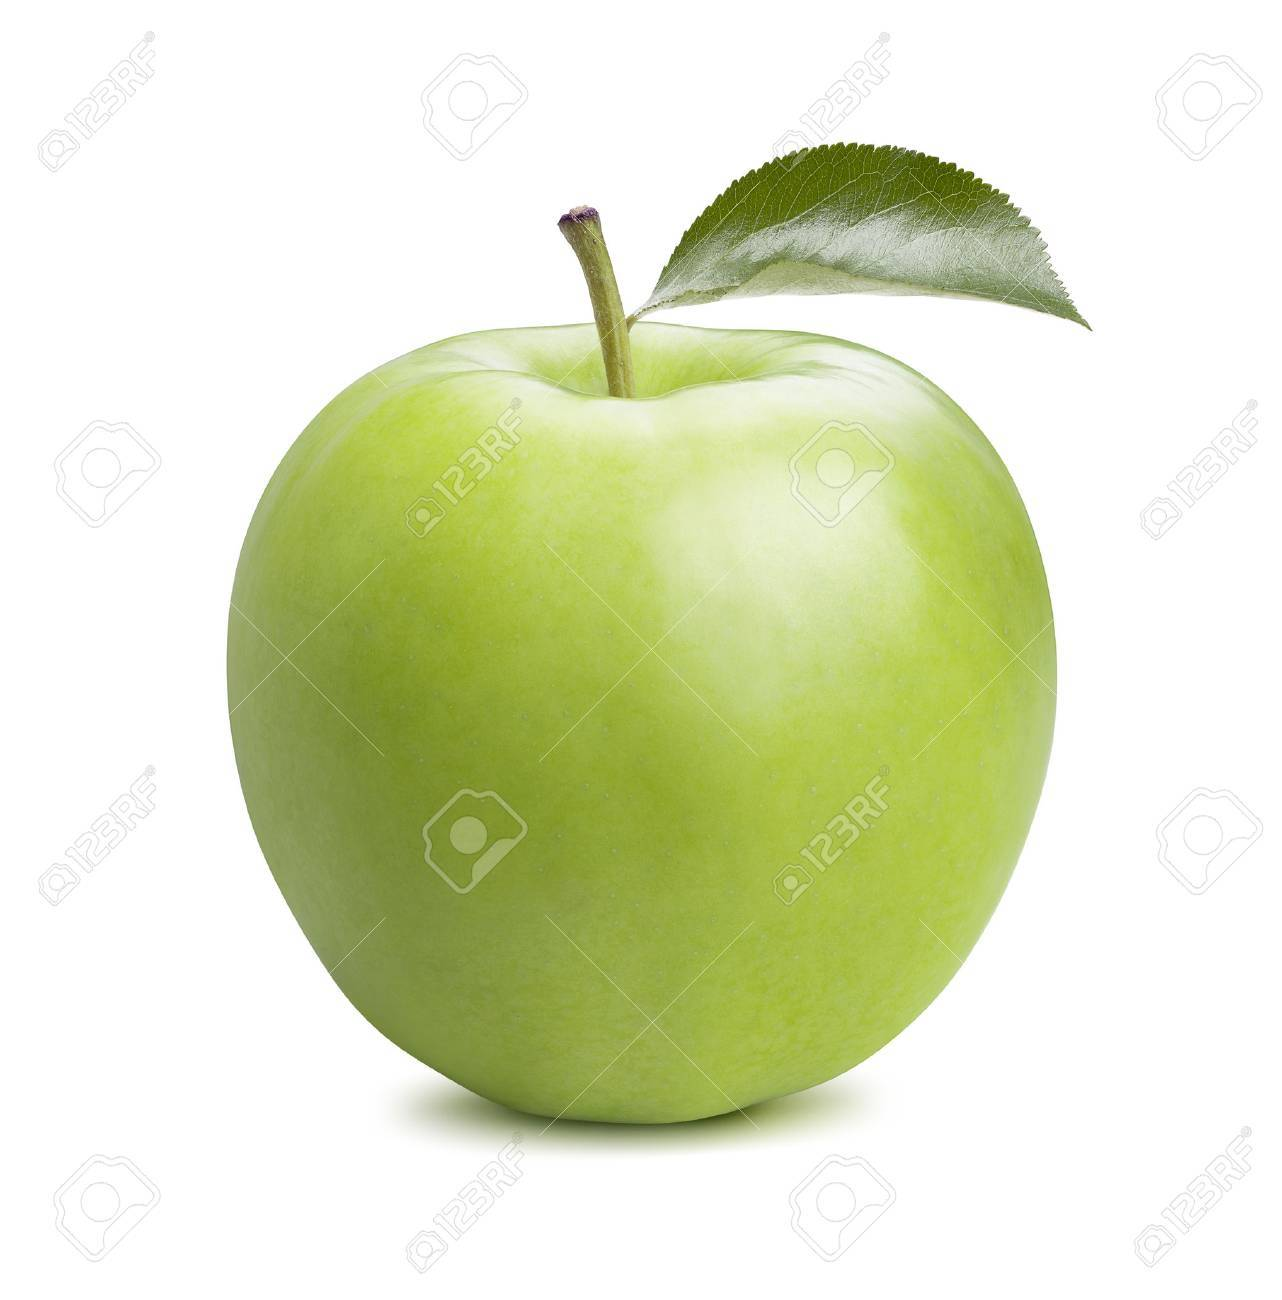 Single whole green apple isolated on white background as package design element - 45293077